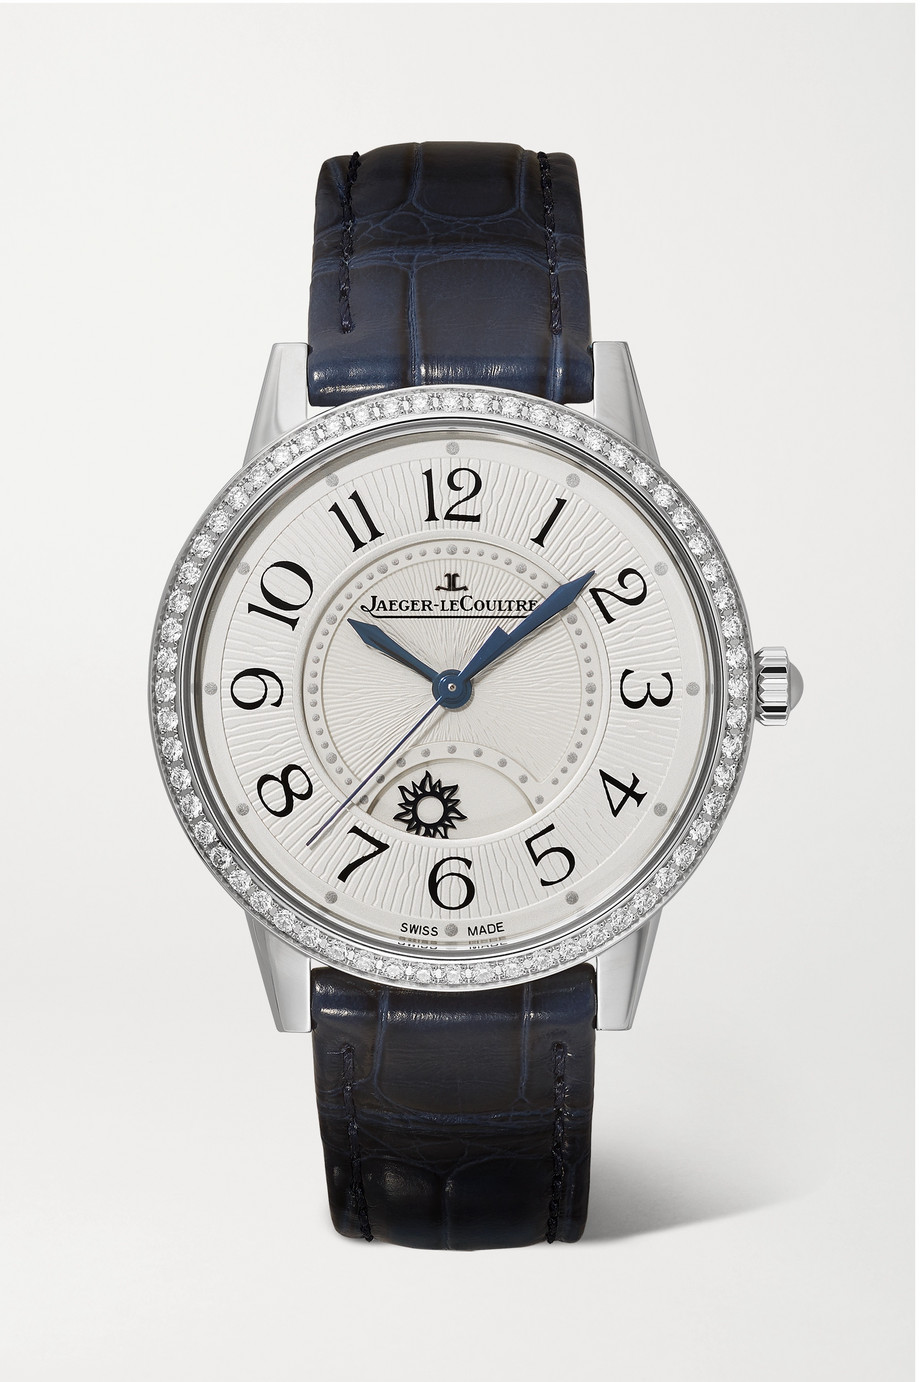 Jaeger-LeCoultre Montre en acier inoxydable et diamants à bracelet en alligator Rendez-Vous Night & Day Medium 34 mm